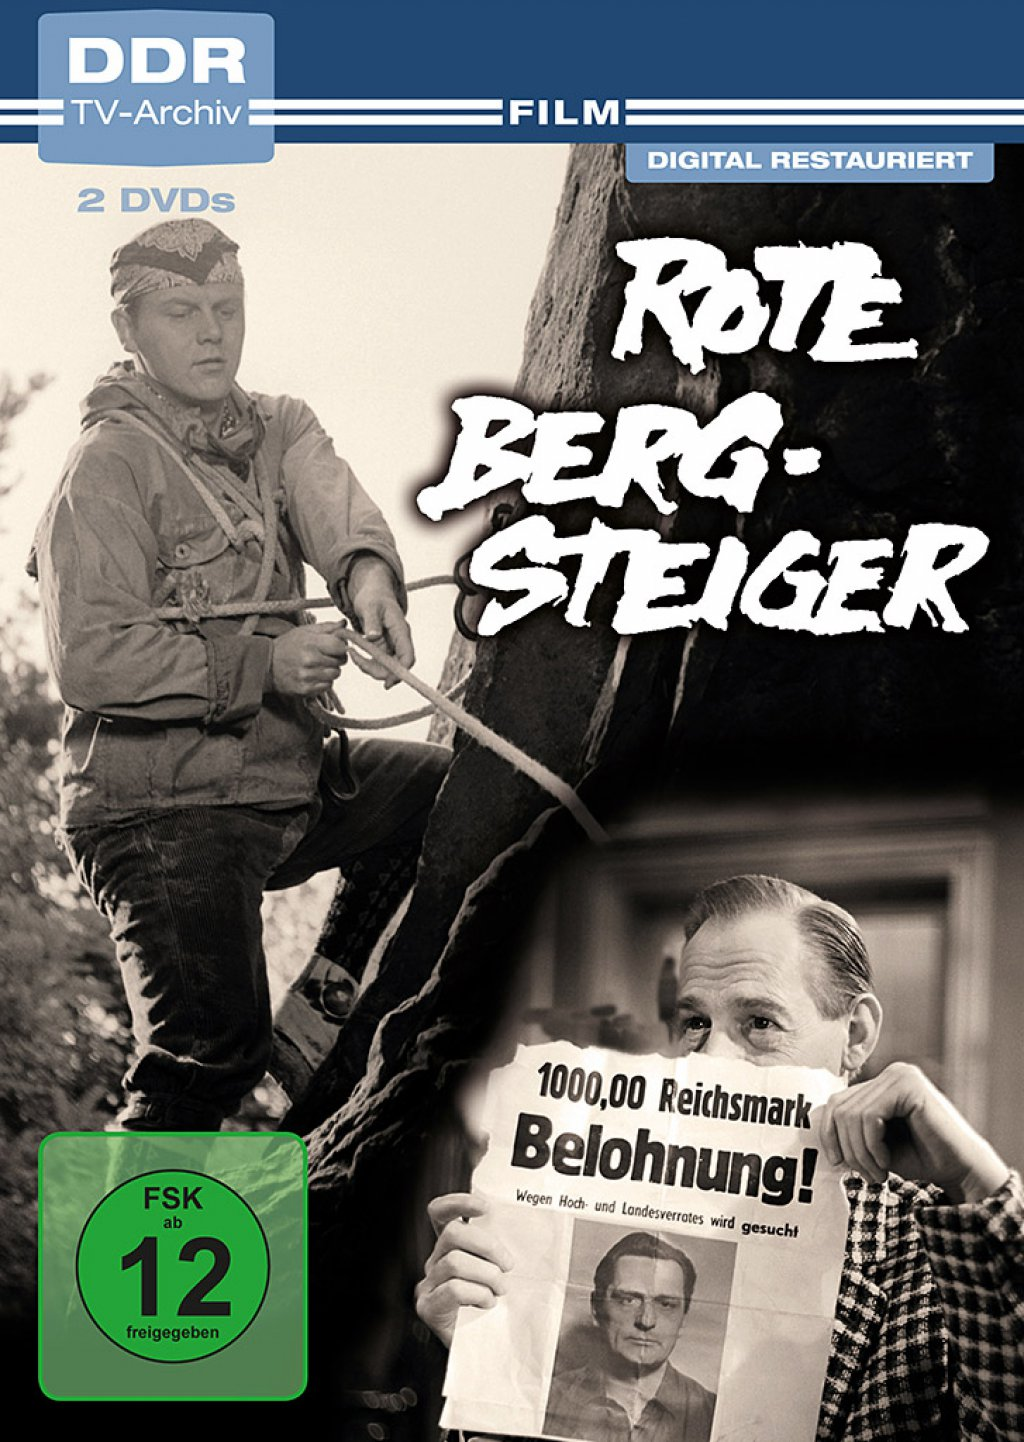 Rote Bergsteiger - DDR TV-Archiv (DVD)